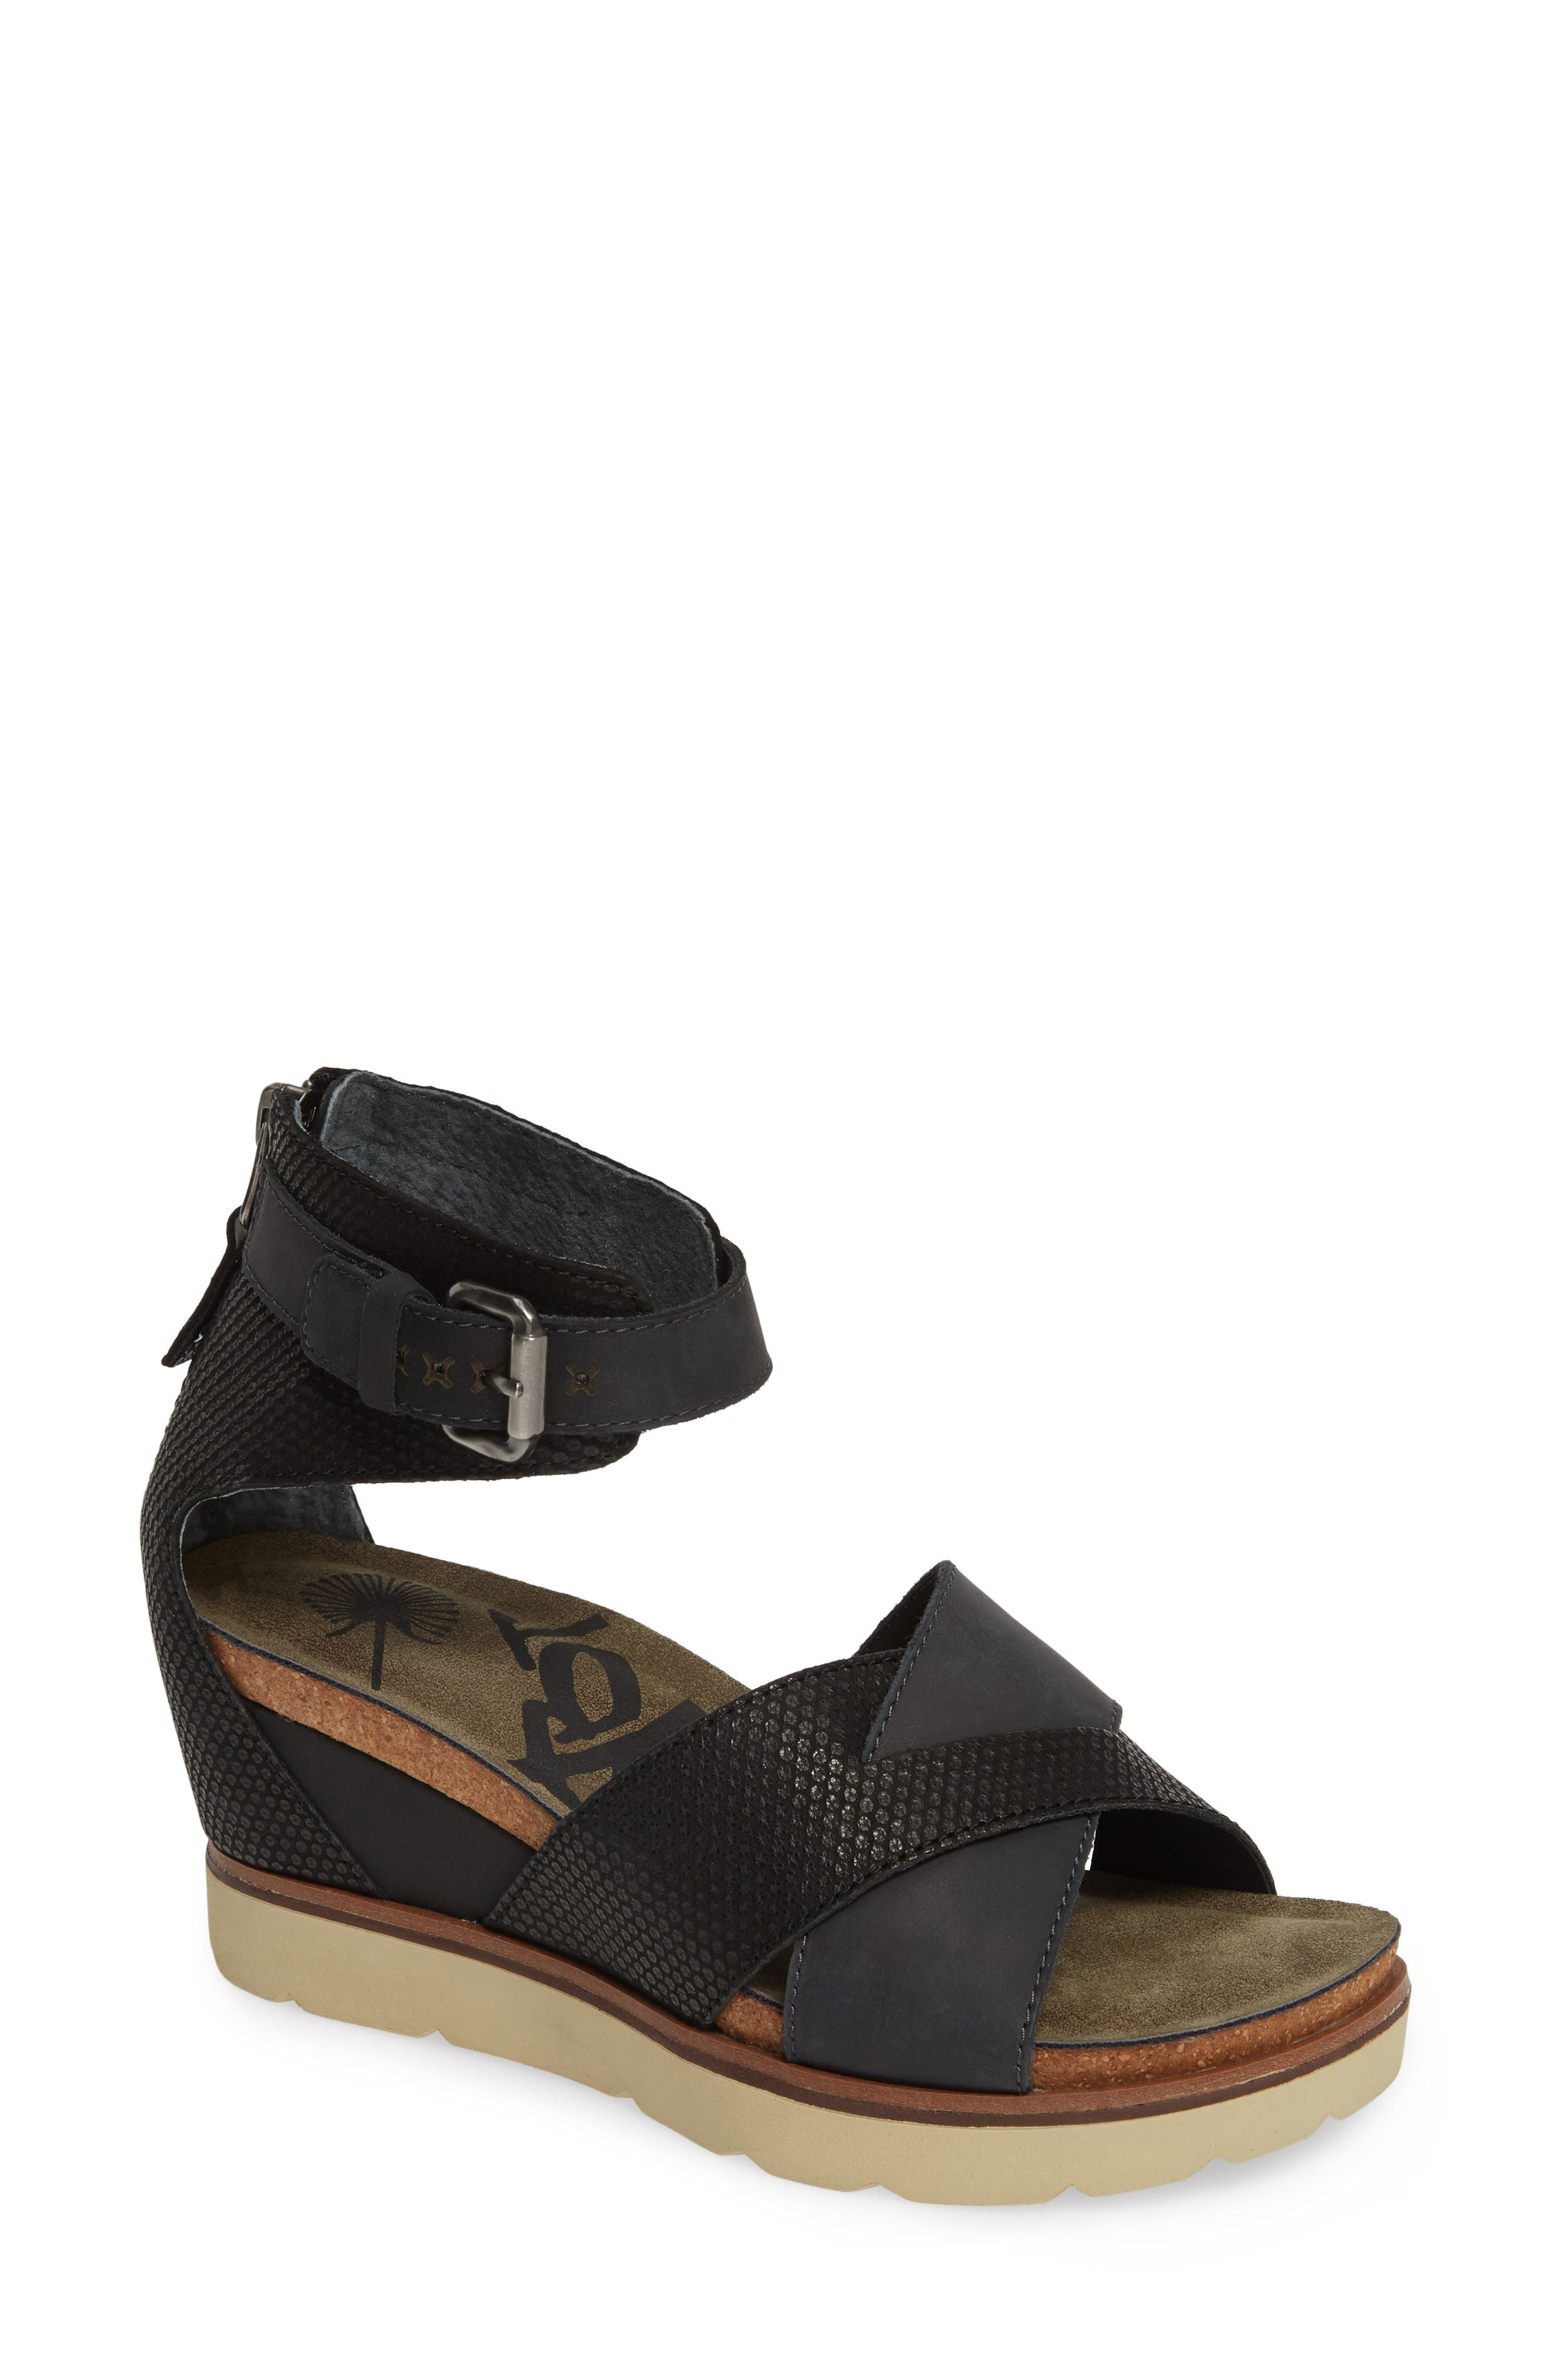 OTBT, Teamwork Ankle Strap Sandal, Main thumbnail 1, color, BLACK LEATHER